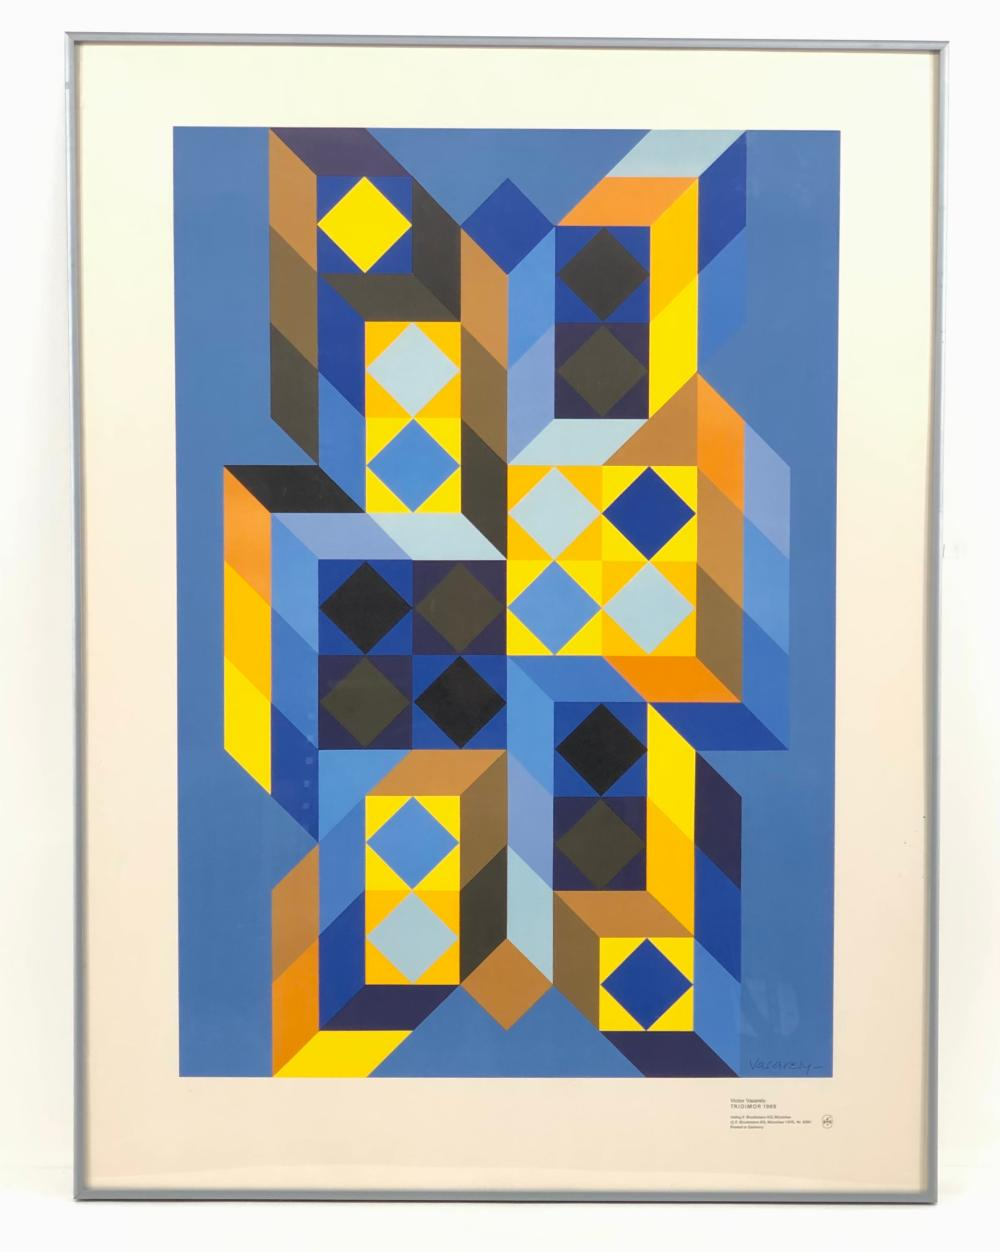 """VICTOR VASARELY """"TRIDIMOR"""" 1969 COLLOTYPE"""